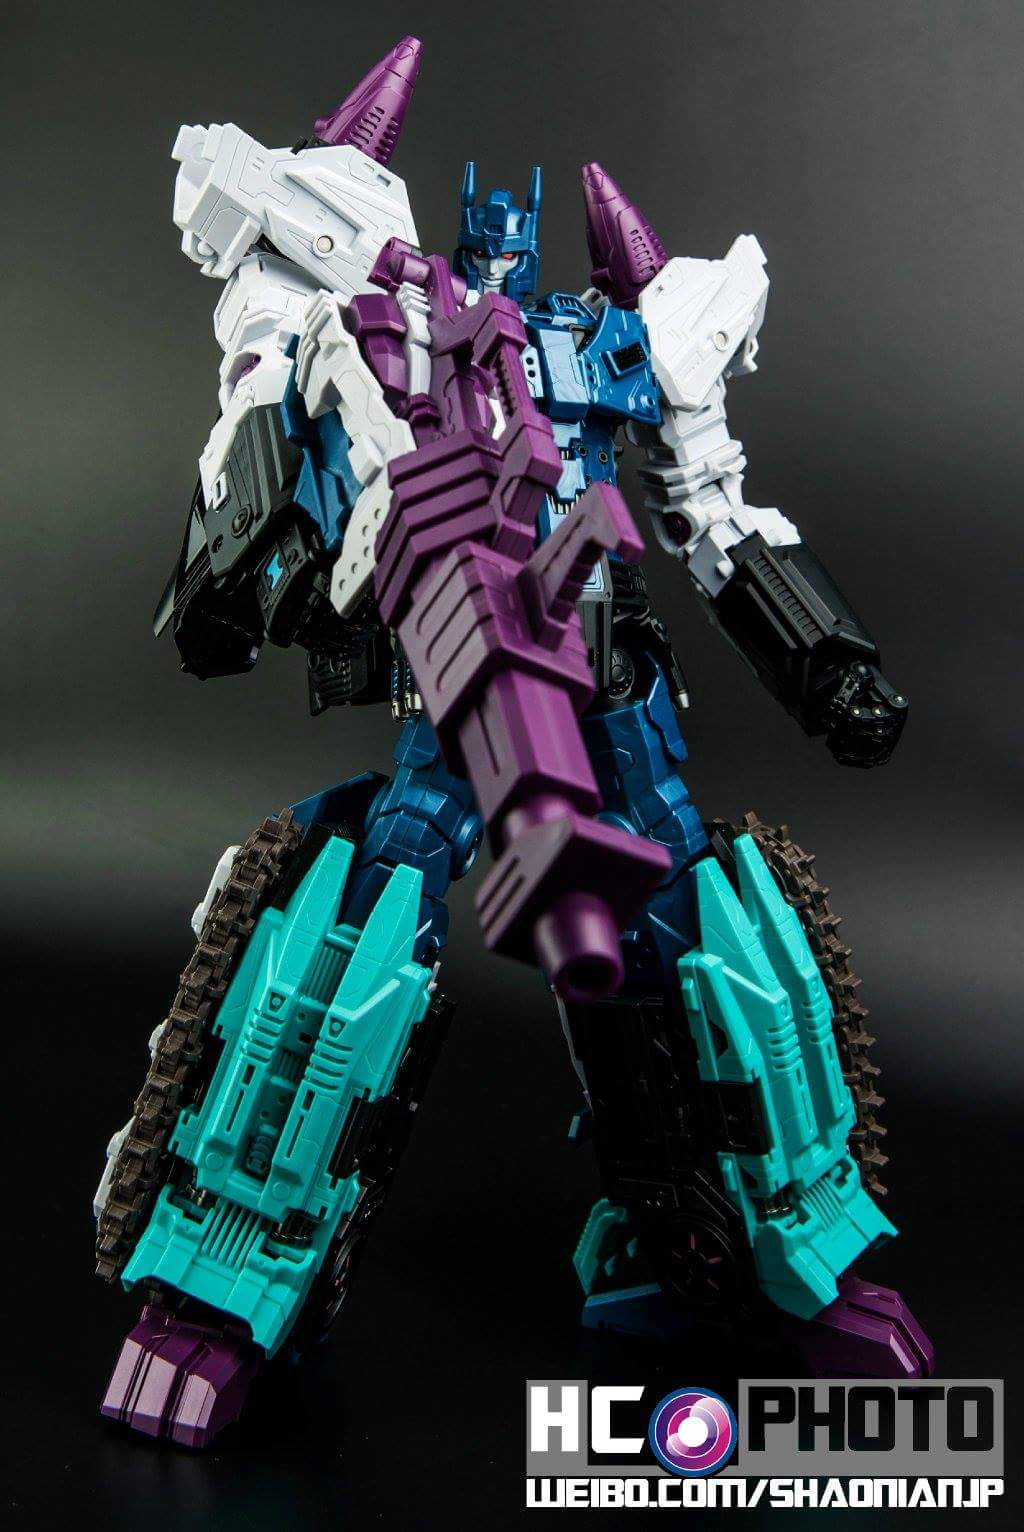 [Mastermind Creations] Produit Tiers - R-17 Carnifex - aka Overlord (TF Masterforce) - Page 3 IAk3Zrs0